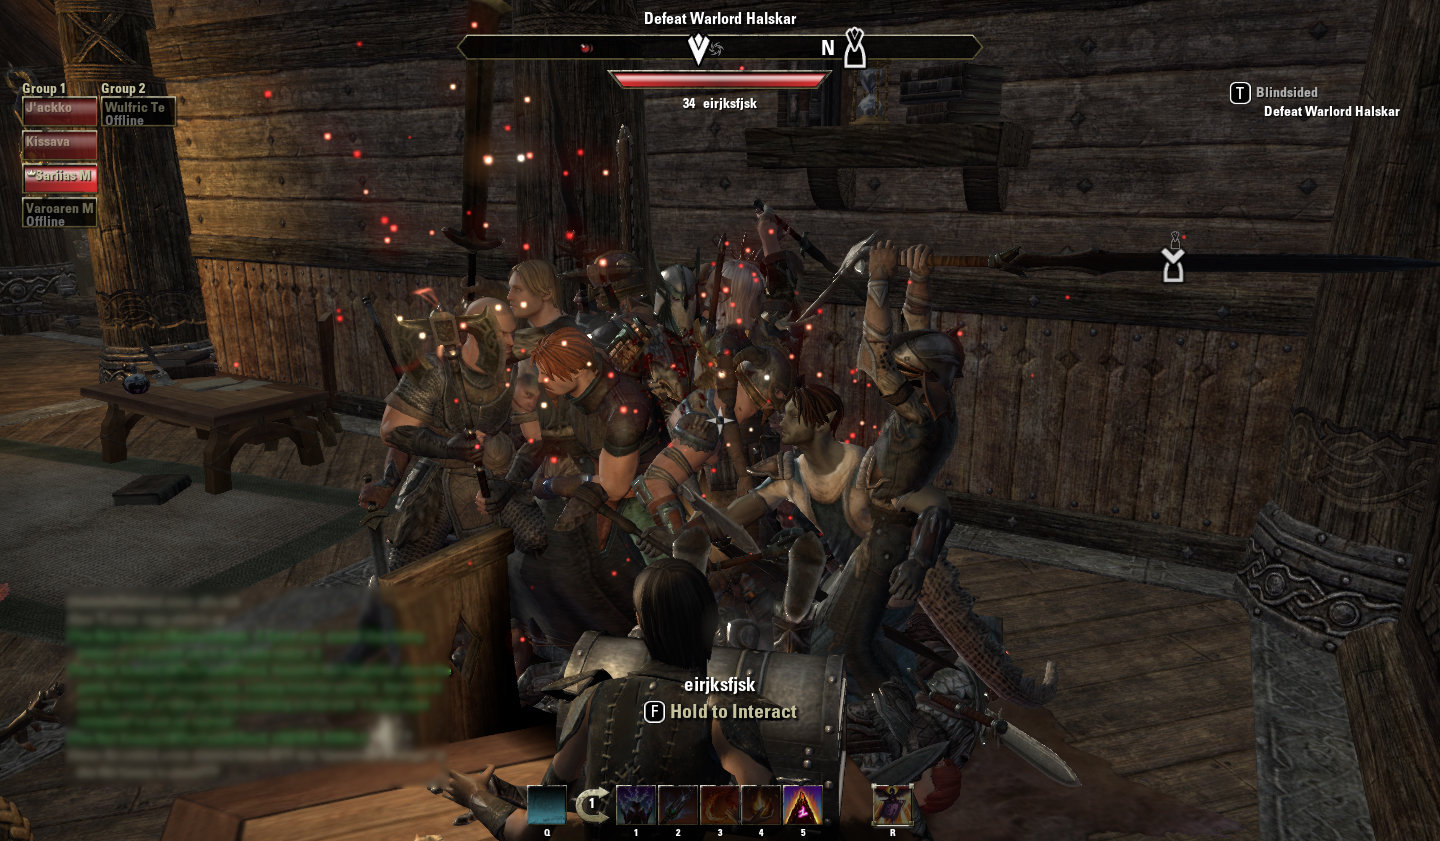 Celebrate Hearts Day with These Touching ESO Community